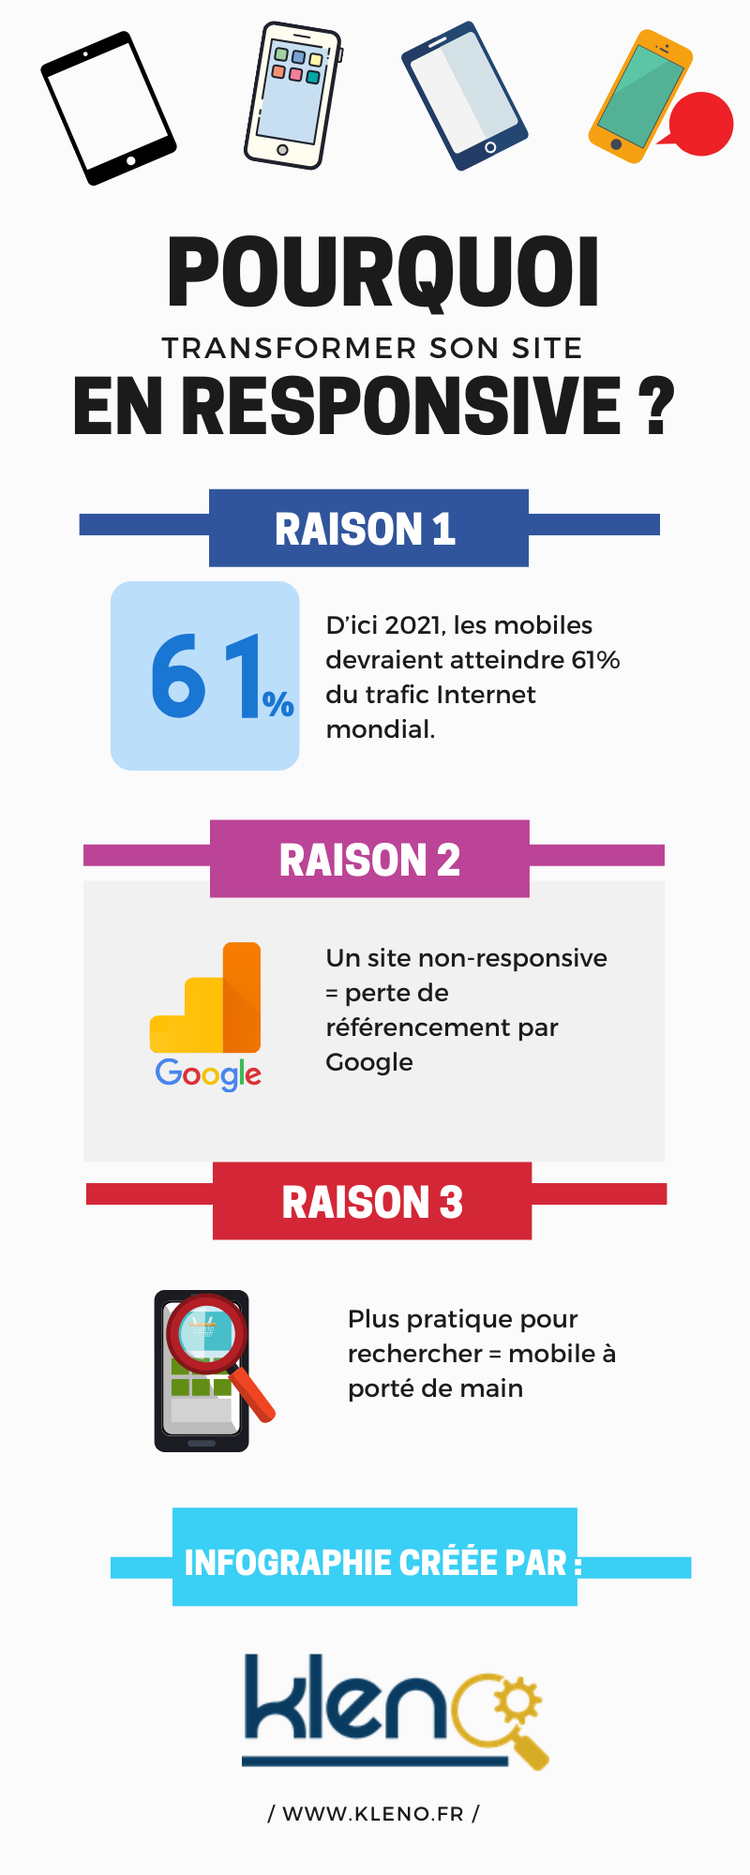 Pourquoi transformer son site en responsive